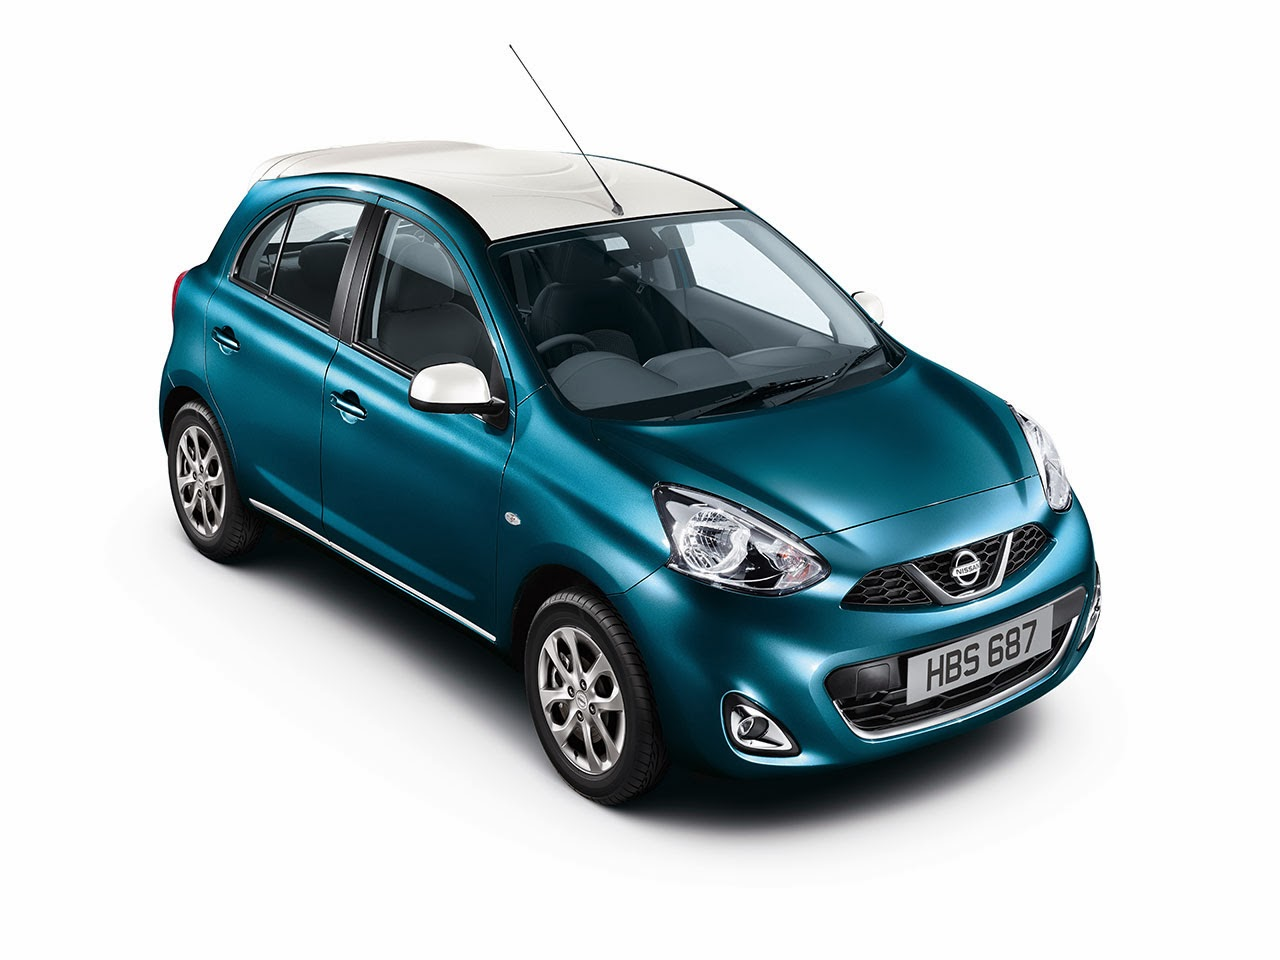 Nissan Limited Edition Micra blue